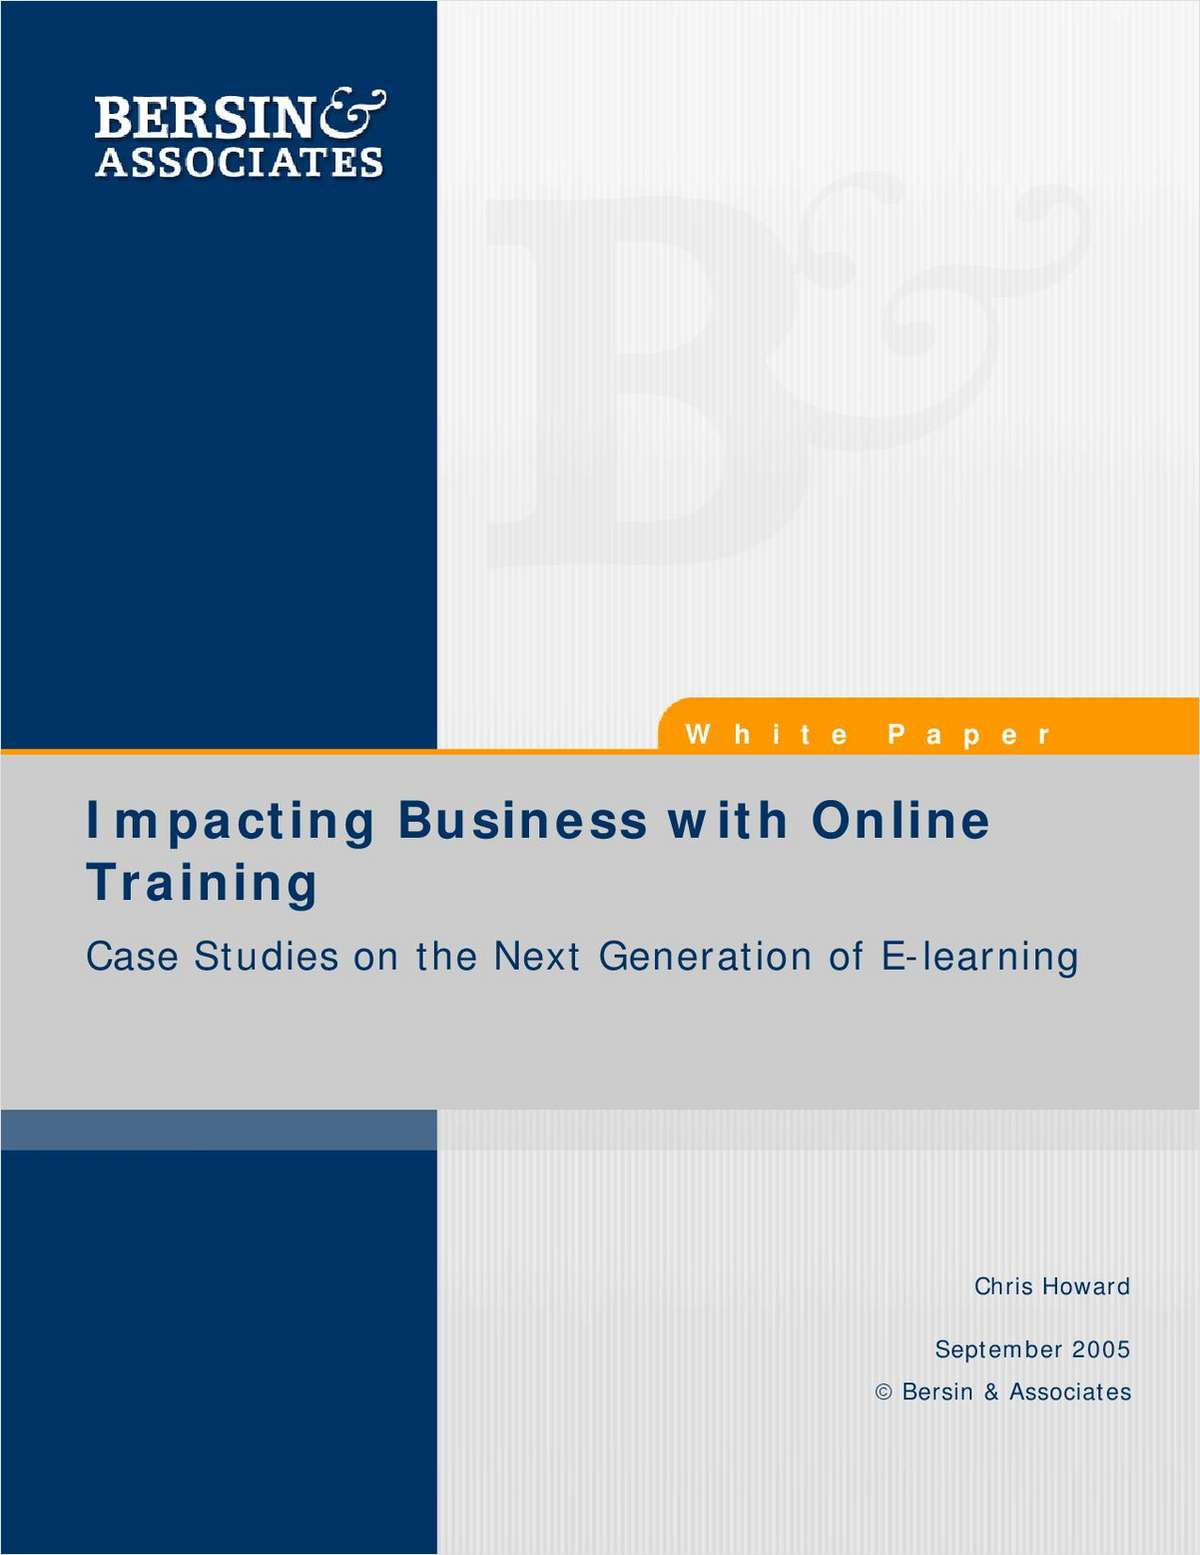 Impacting Business with Online Training